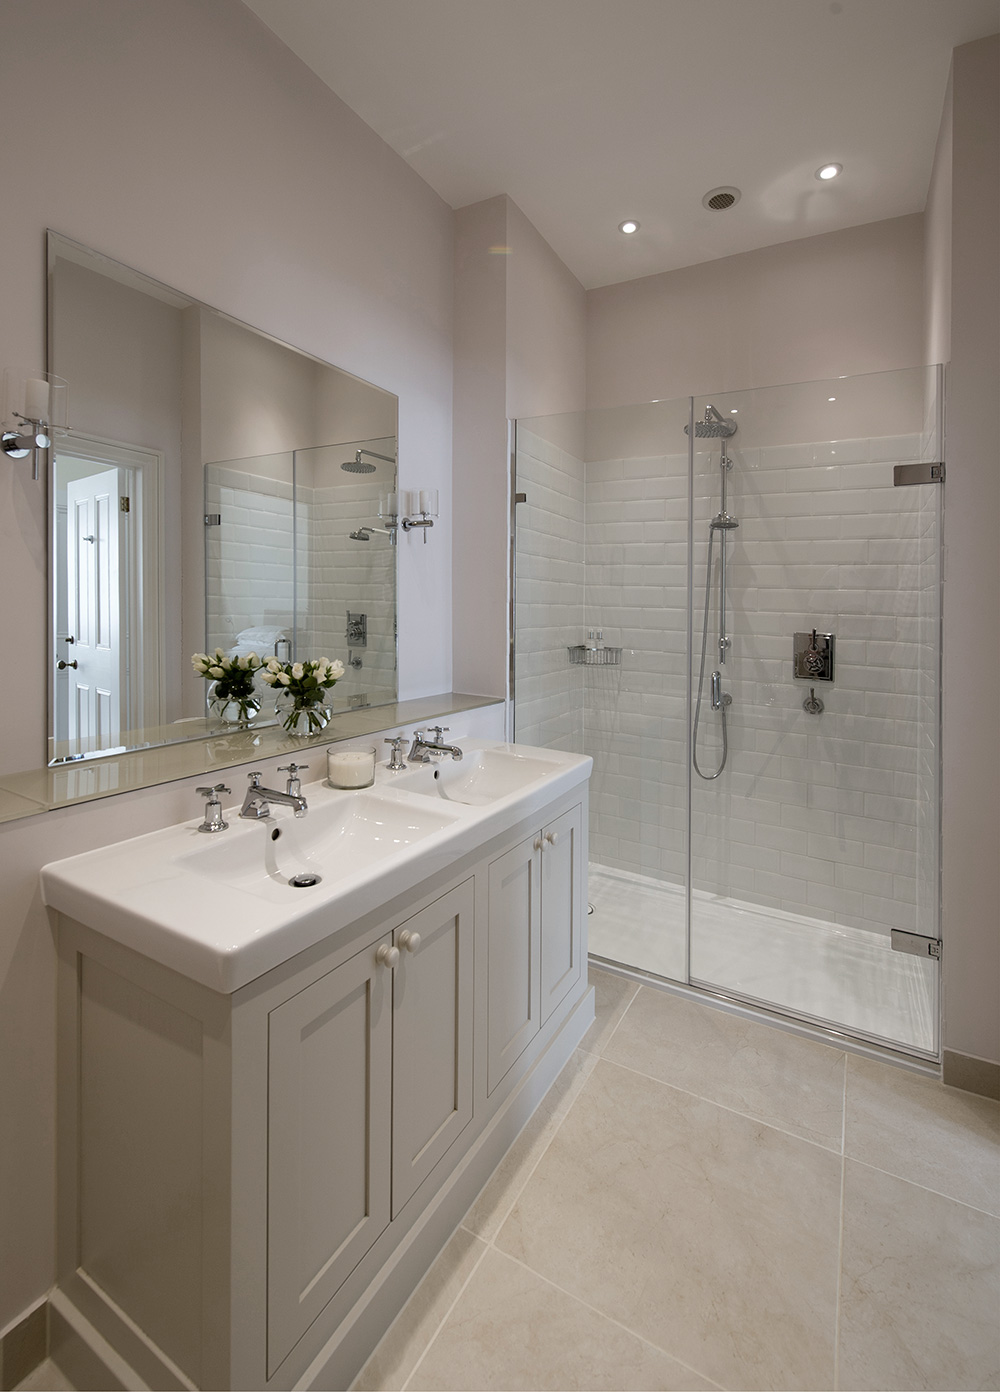 traditional Bathroom, ensuite, shower room, Nikkirees.com, wimbledon interior designer, london and surrey interior design